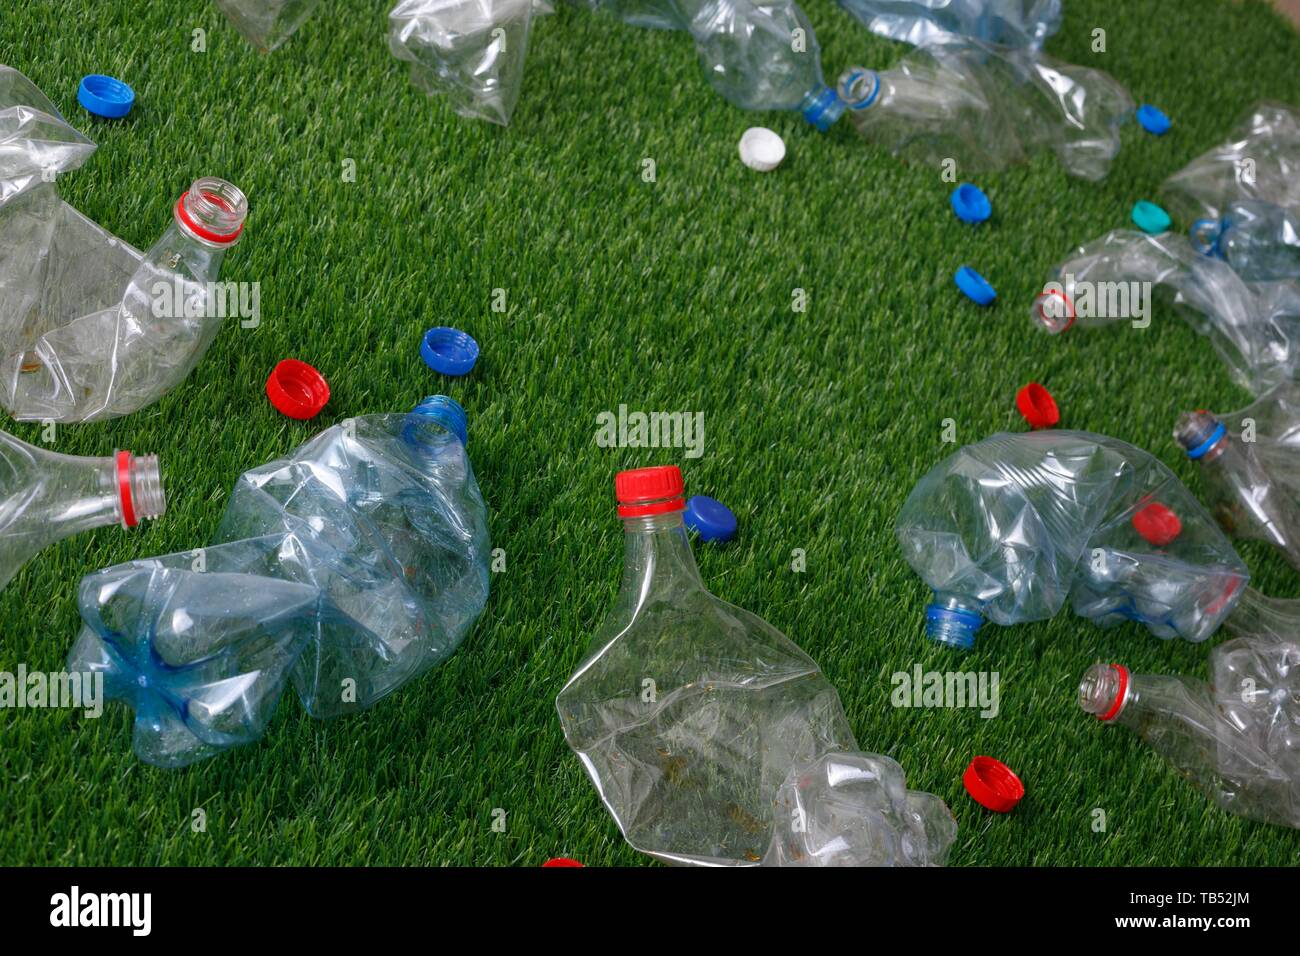 The concept of recycling plastic and environmental protection. Pet preforms for plastic bottles on the green grass. Artificial turf, plastic. - Stock Image